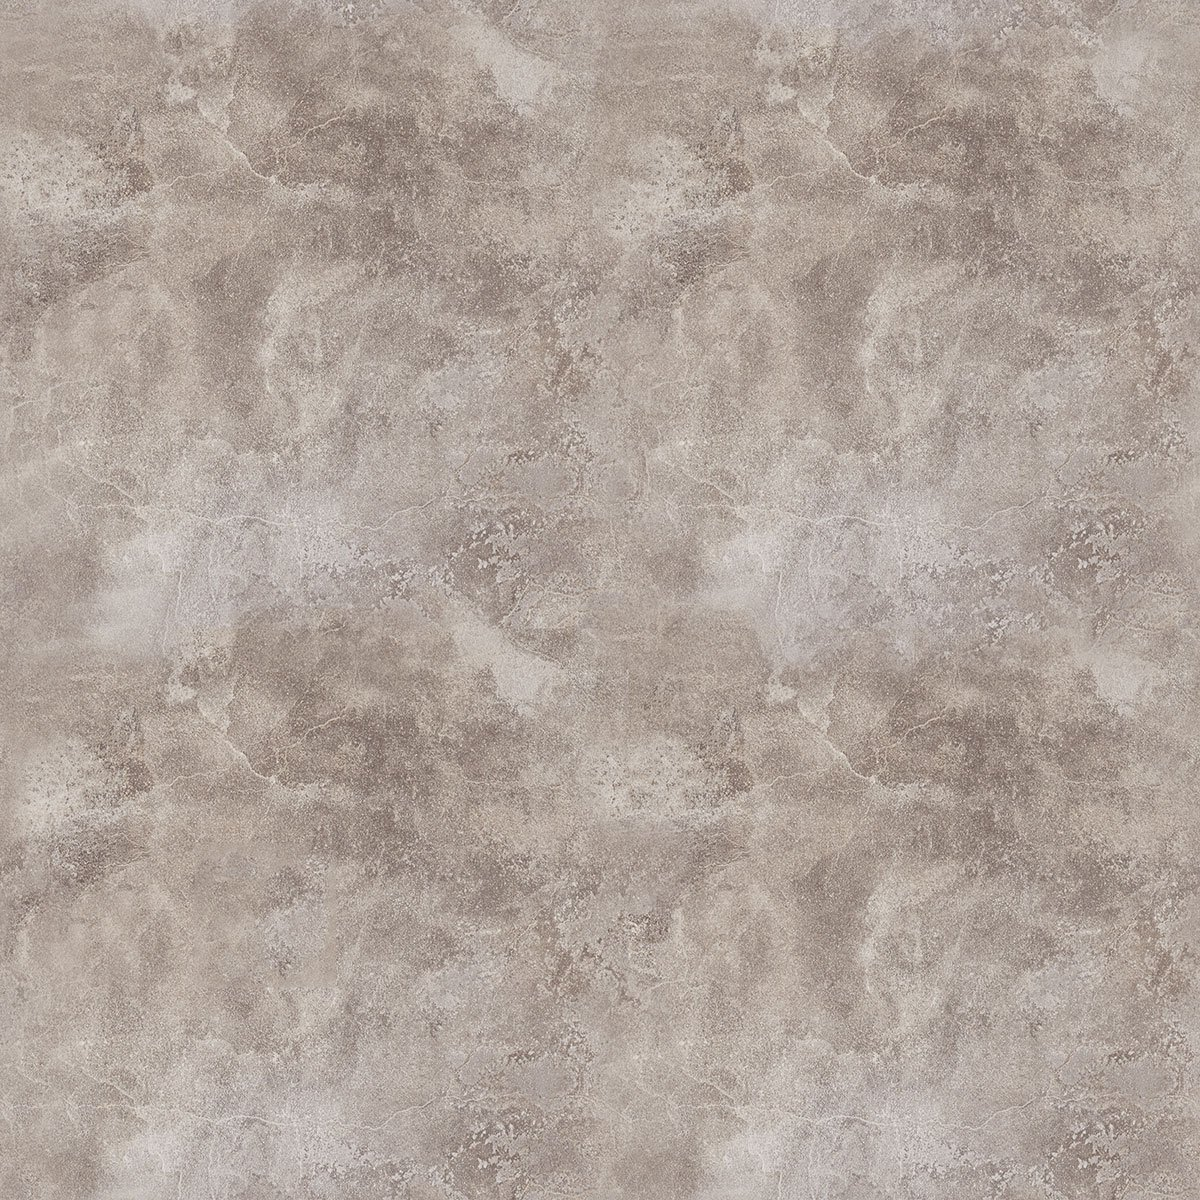 Formica Brand Laminate 063171234512000 Weathered Cement Laminate, Weathered Cement Scovato